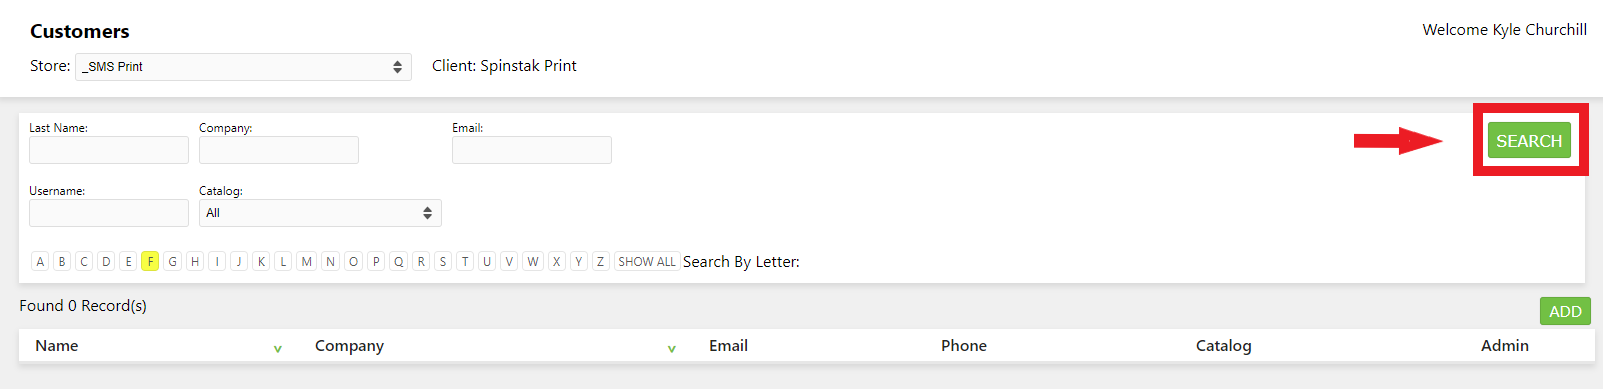 Spinstak eCommerce Customer Search